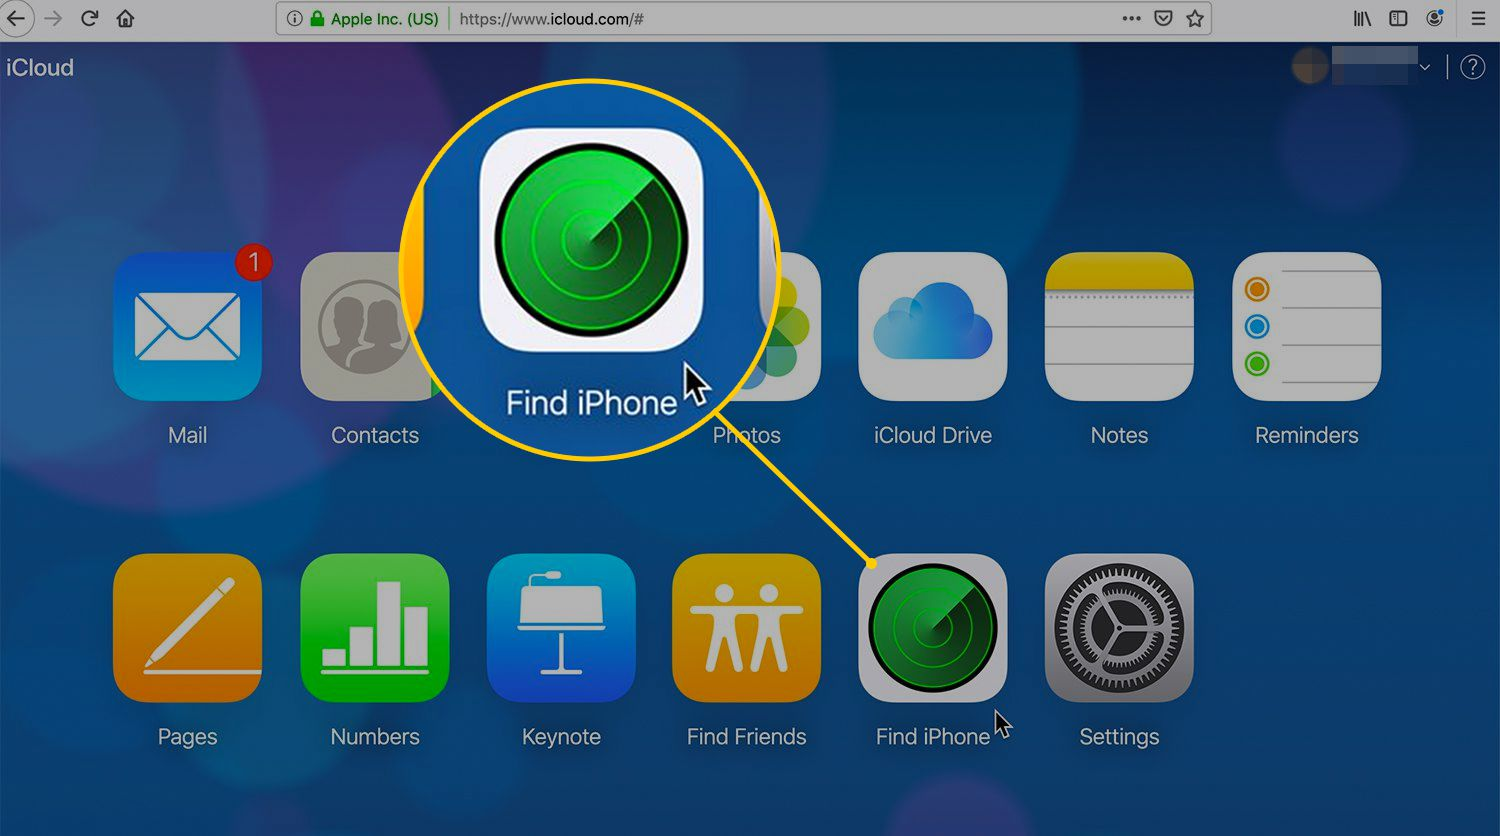 Find iPhone button on iCloud website